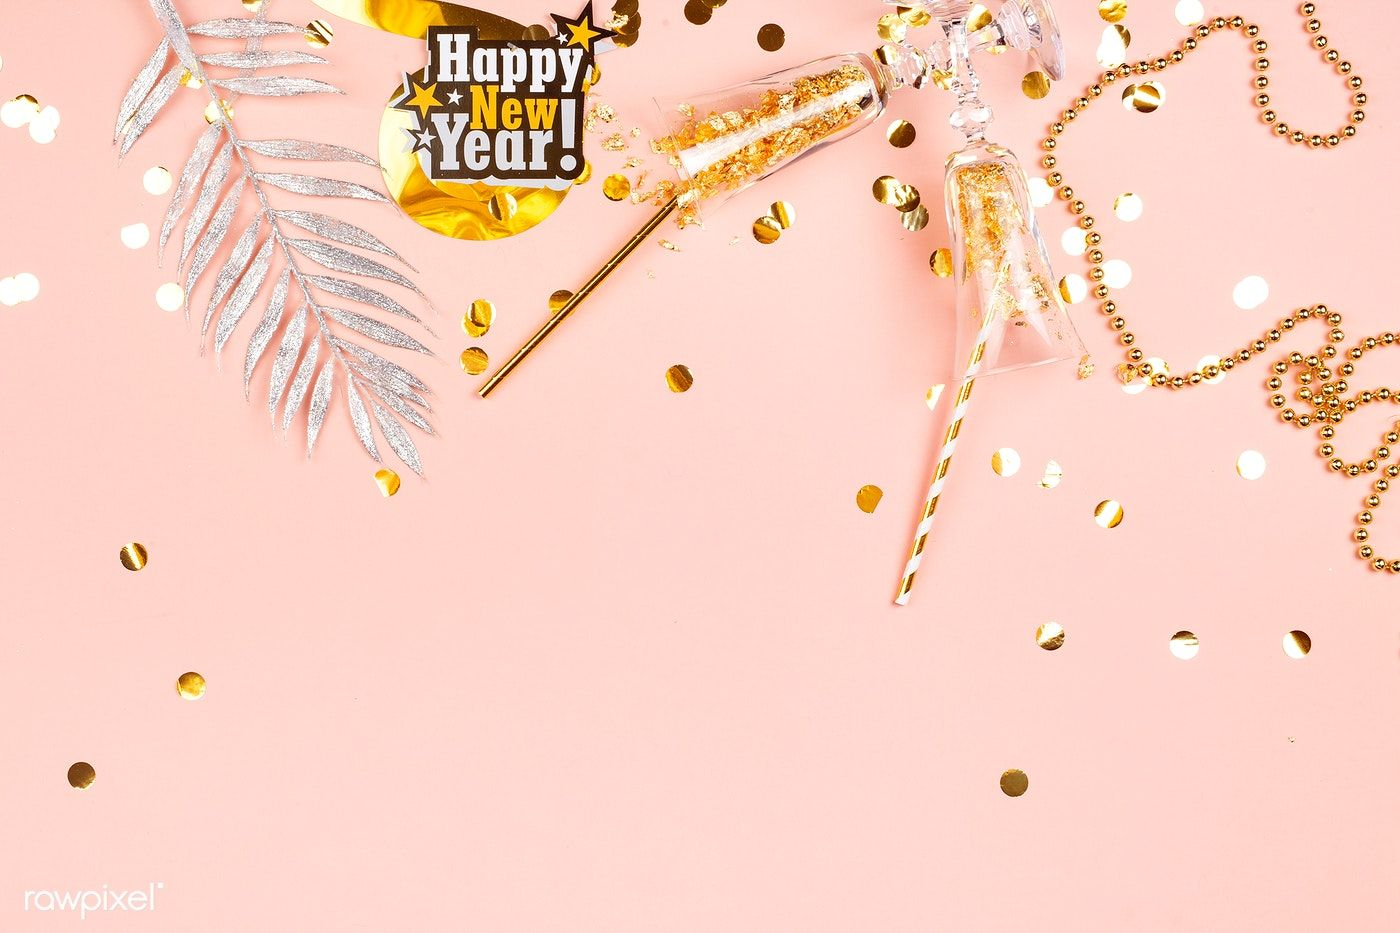 Download premium photo of Glamorous pink Happy New Year